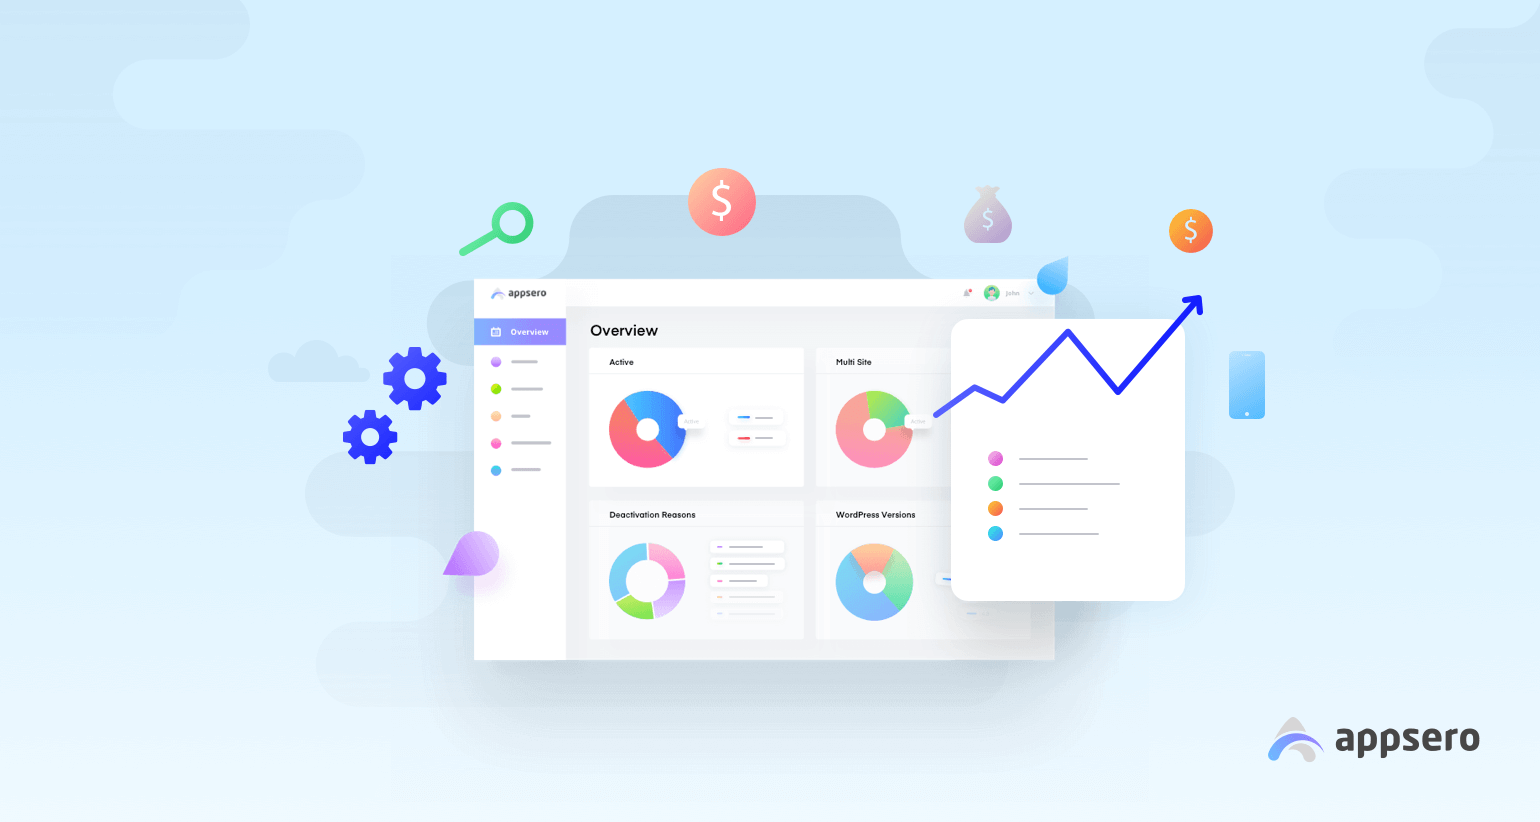 Appsero analytics